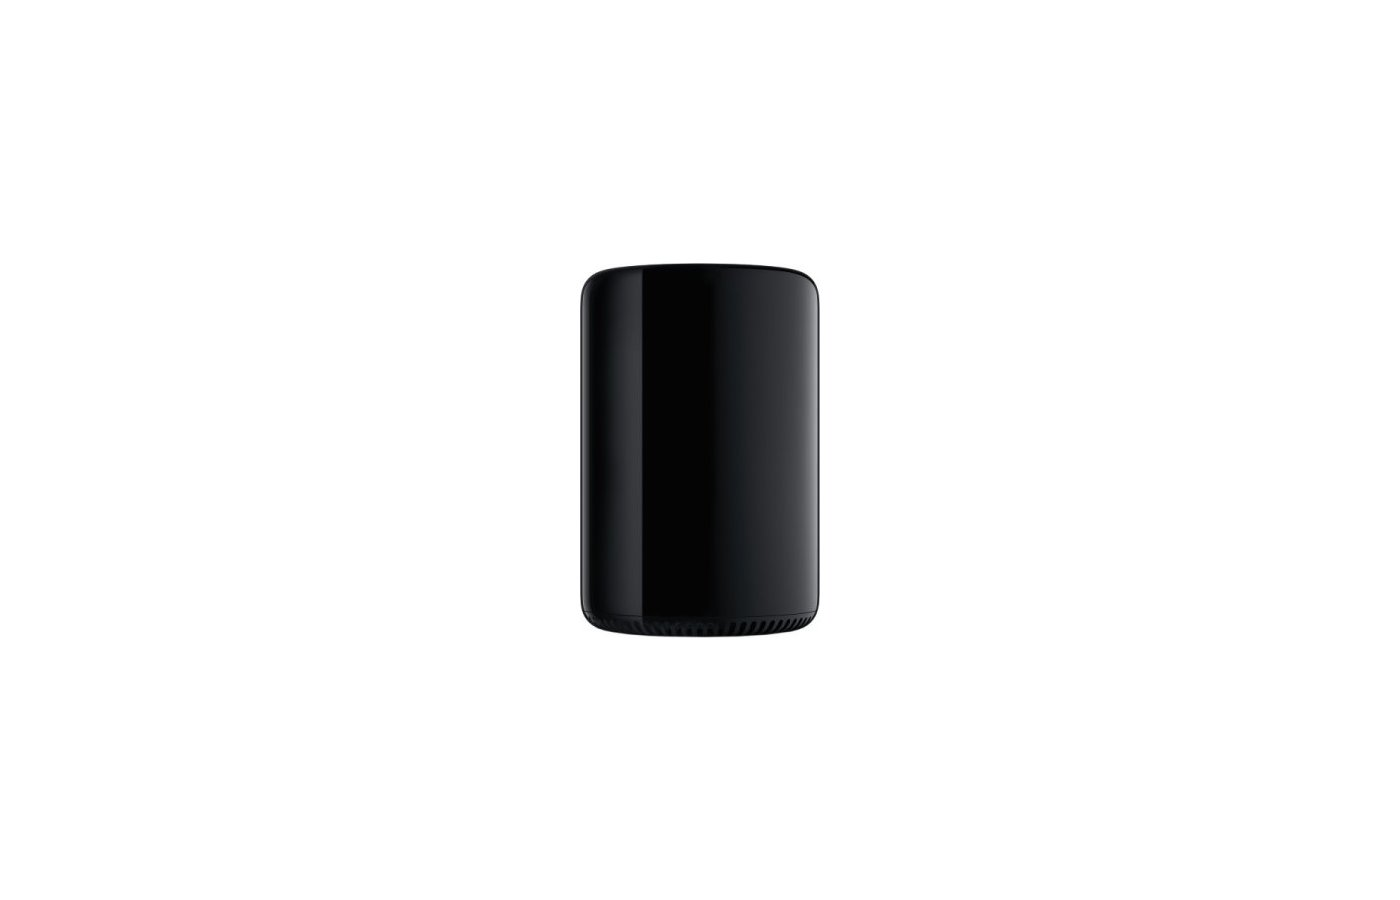 Системный блок Apple Mac Pro /MD878RU/A/